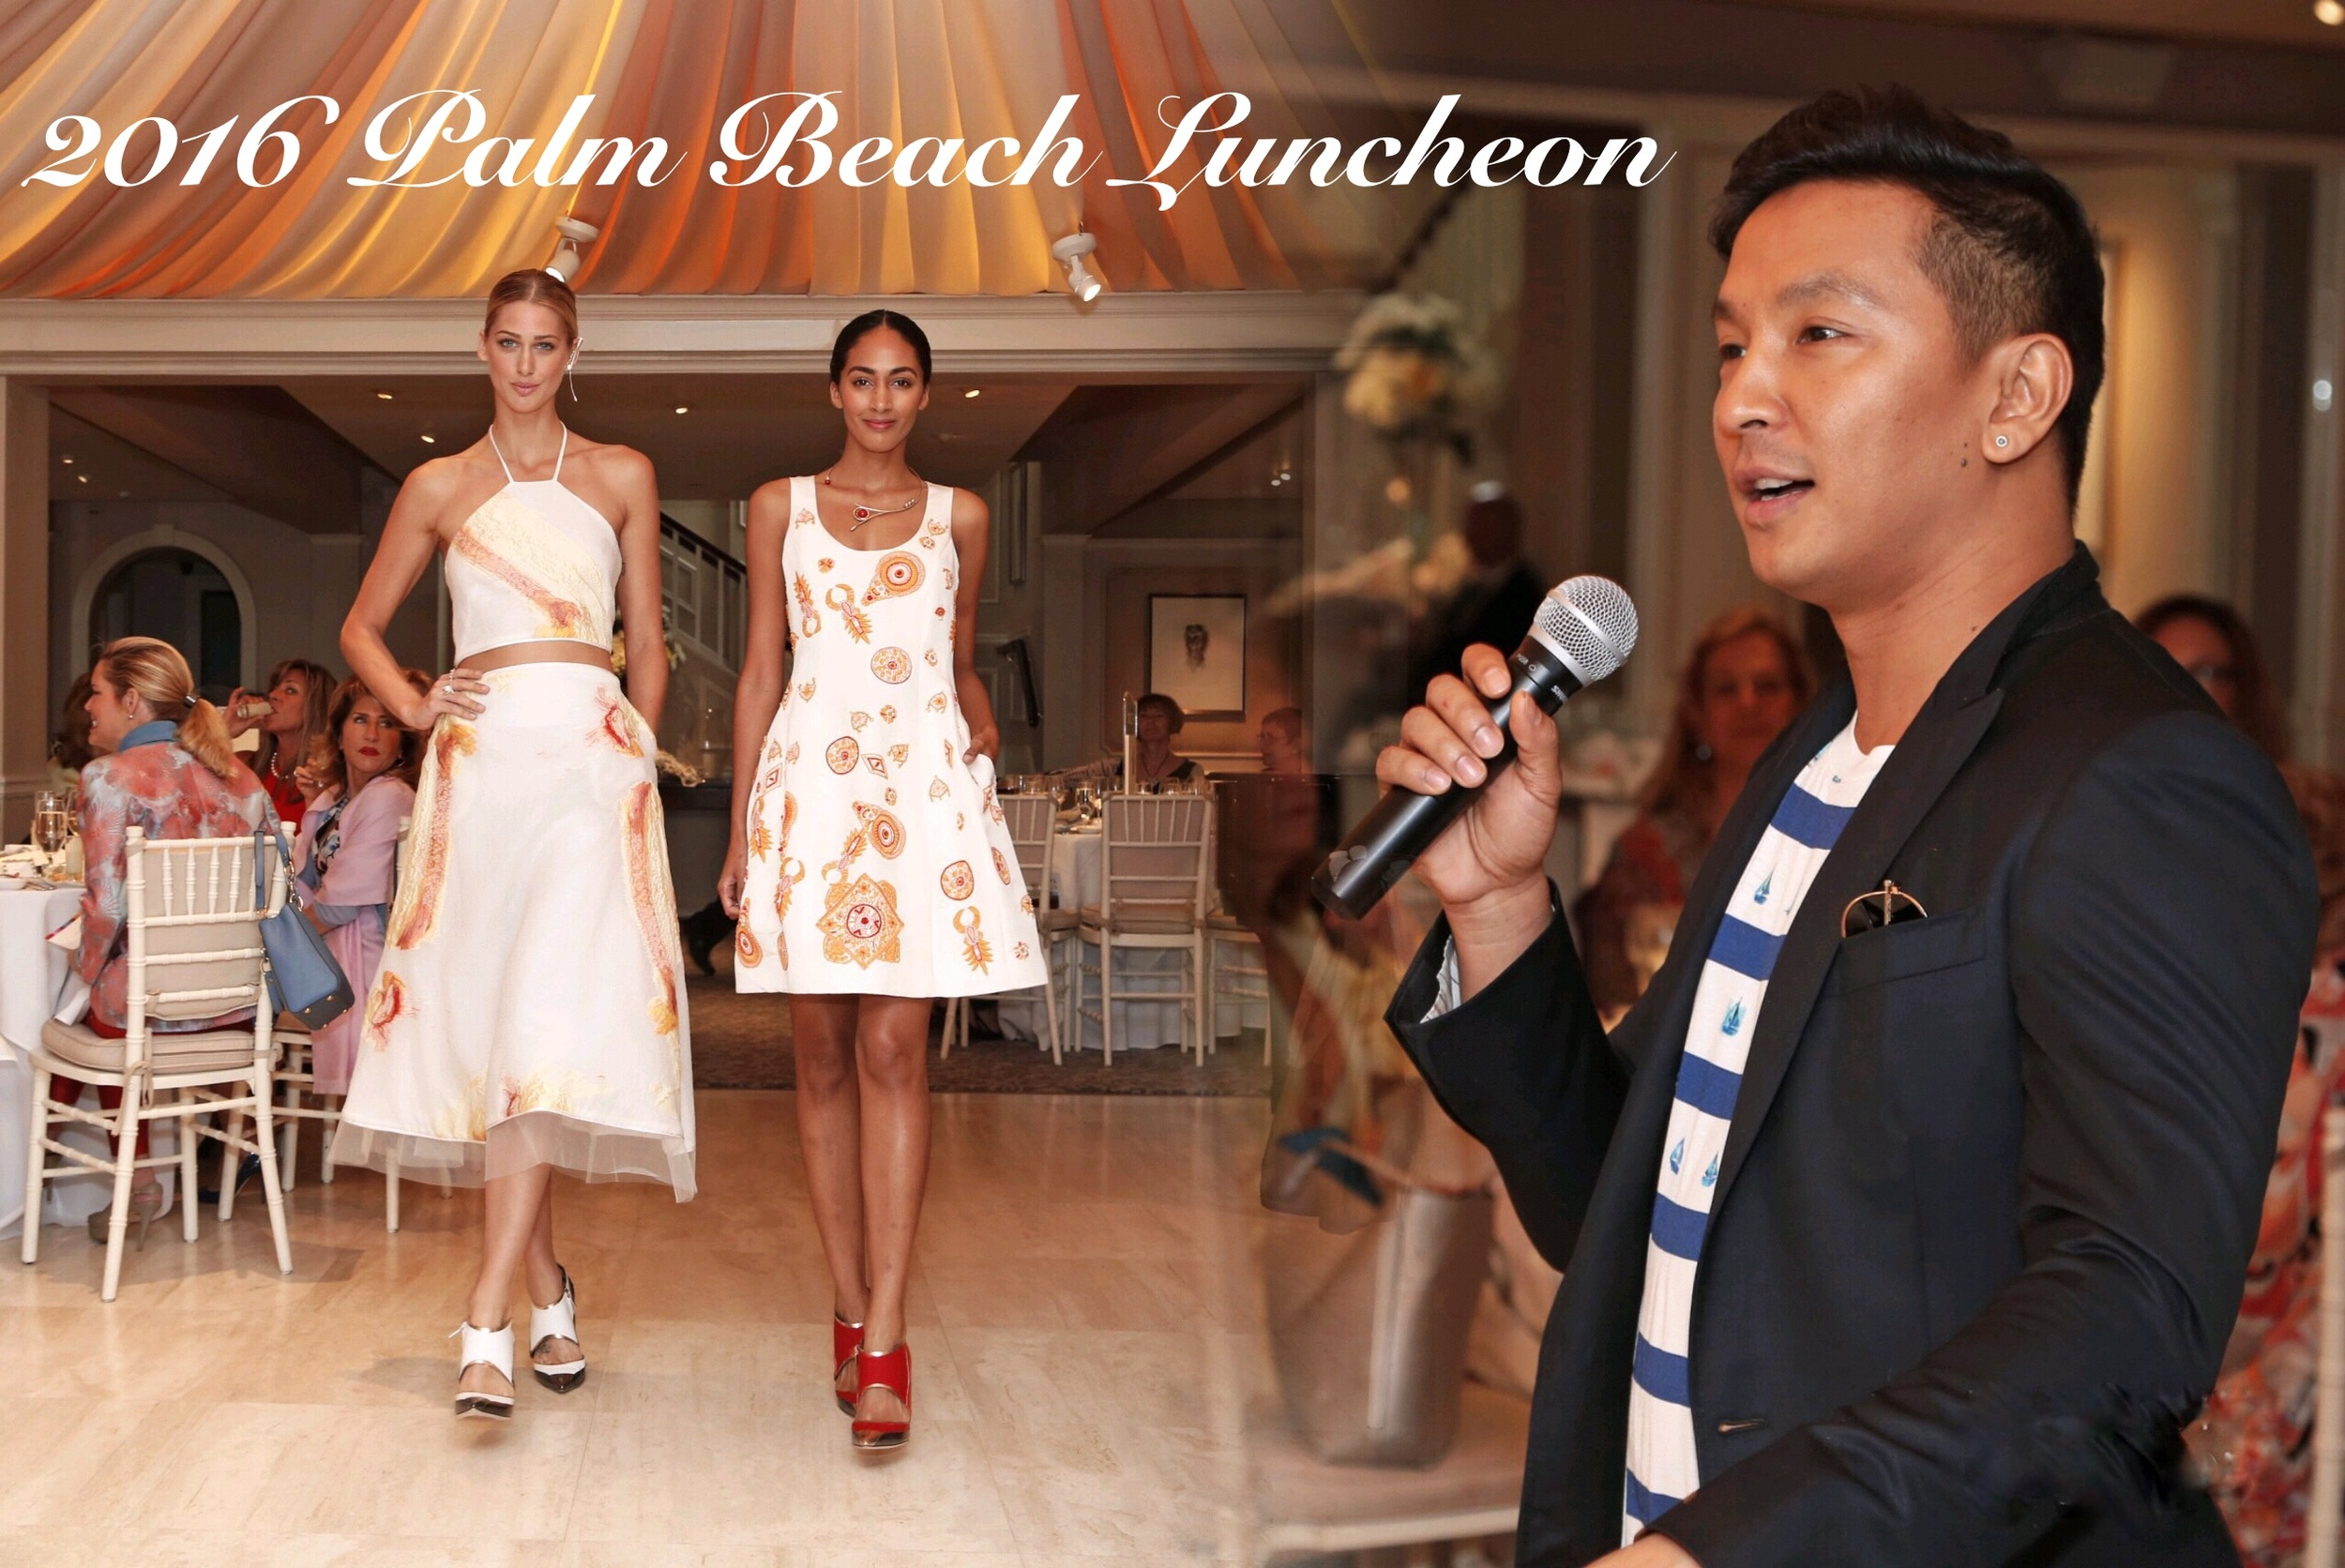 With Honorary Chair Iris Apfel & Special Fashion Presentation By Prabal Gurung